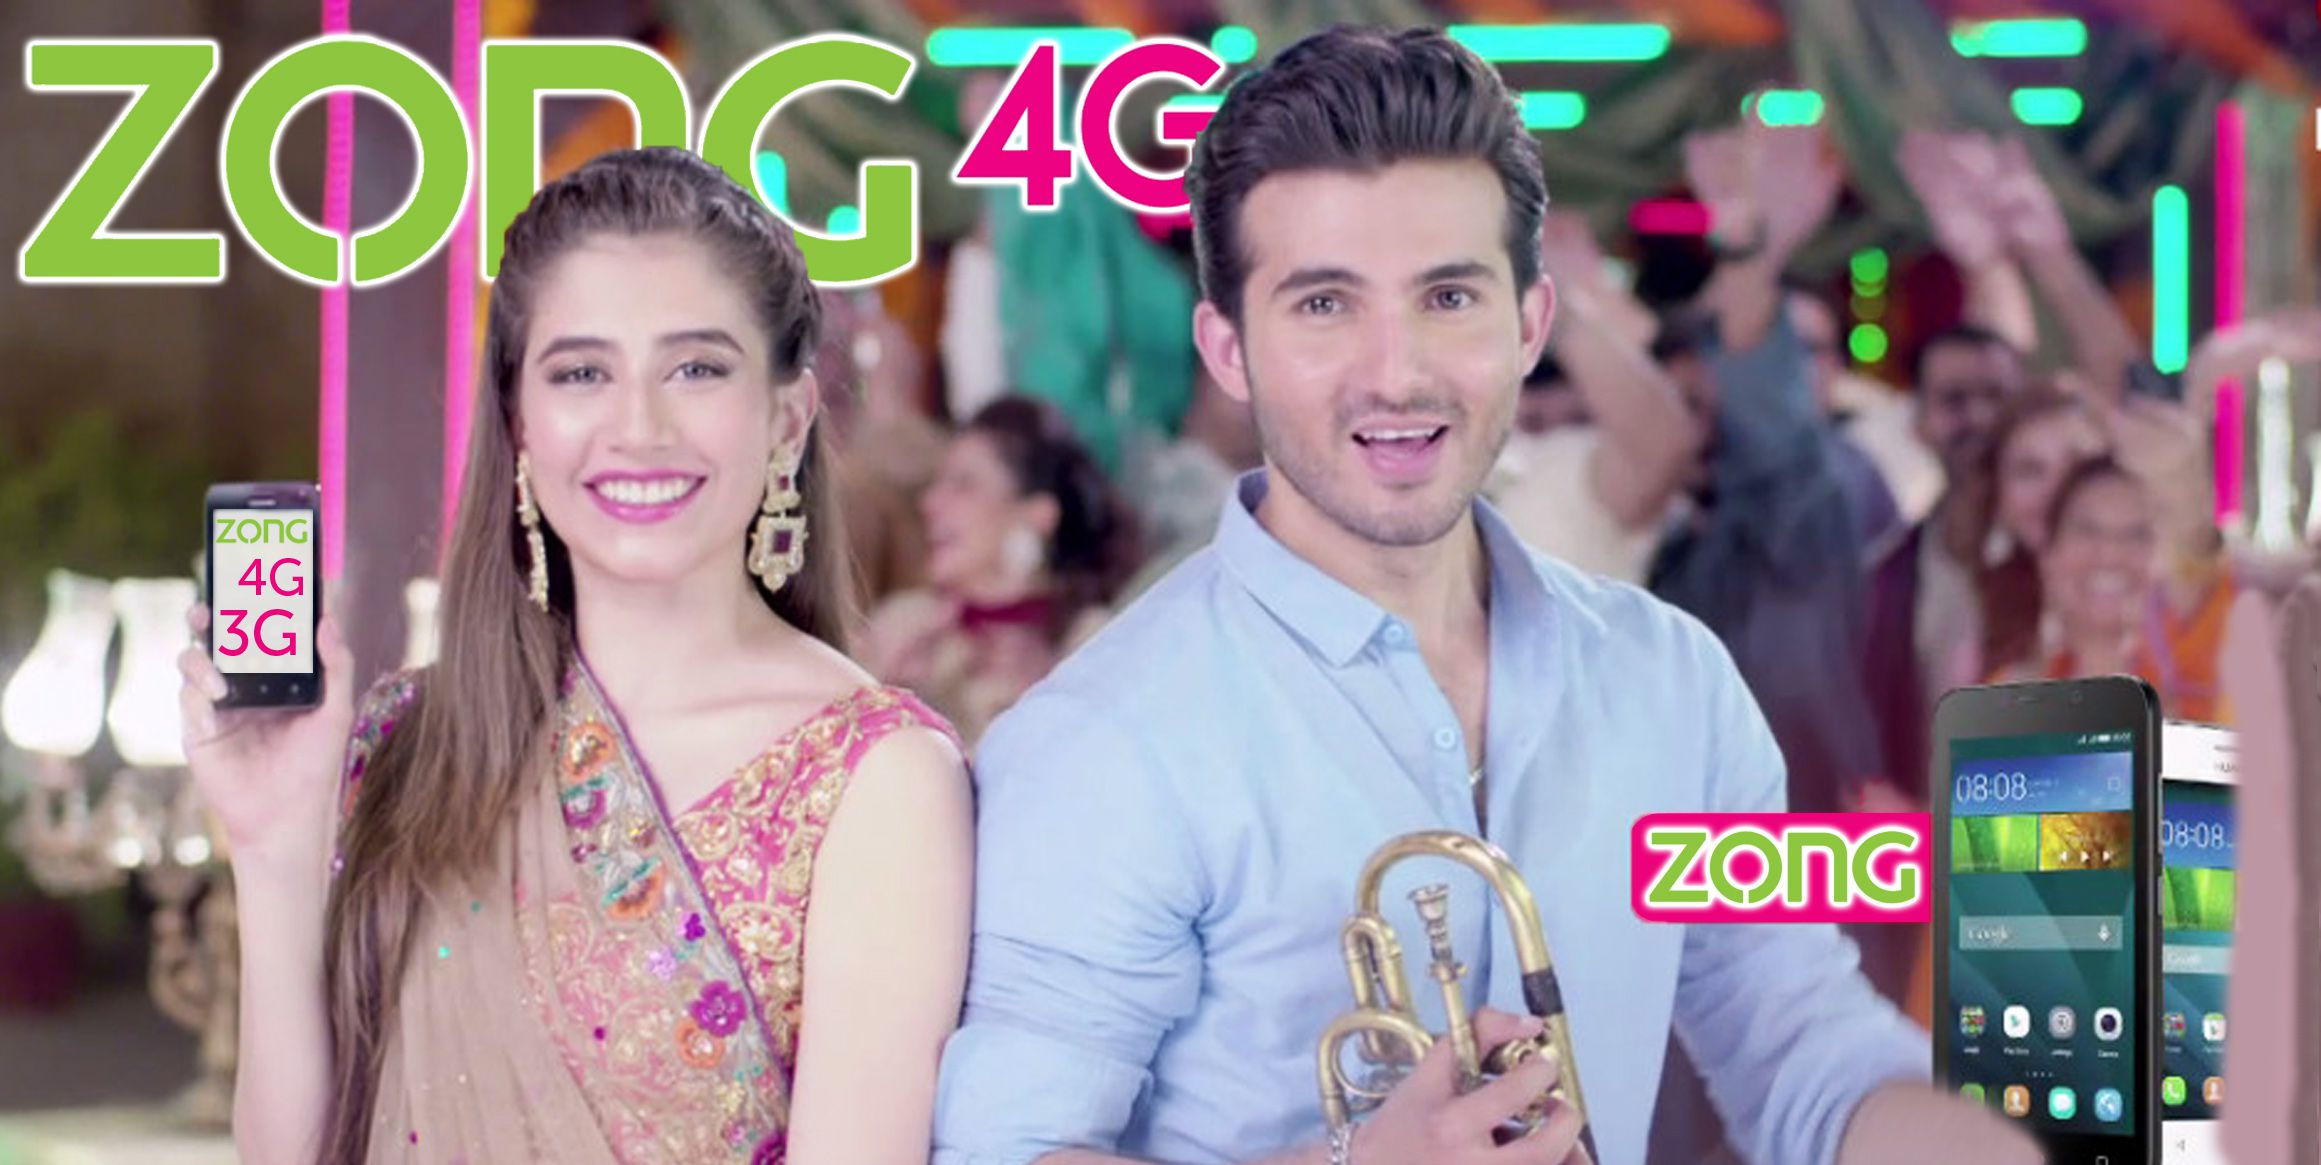 Zong 3g Packages Zong 4g Packages